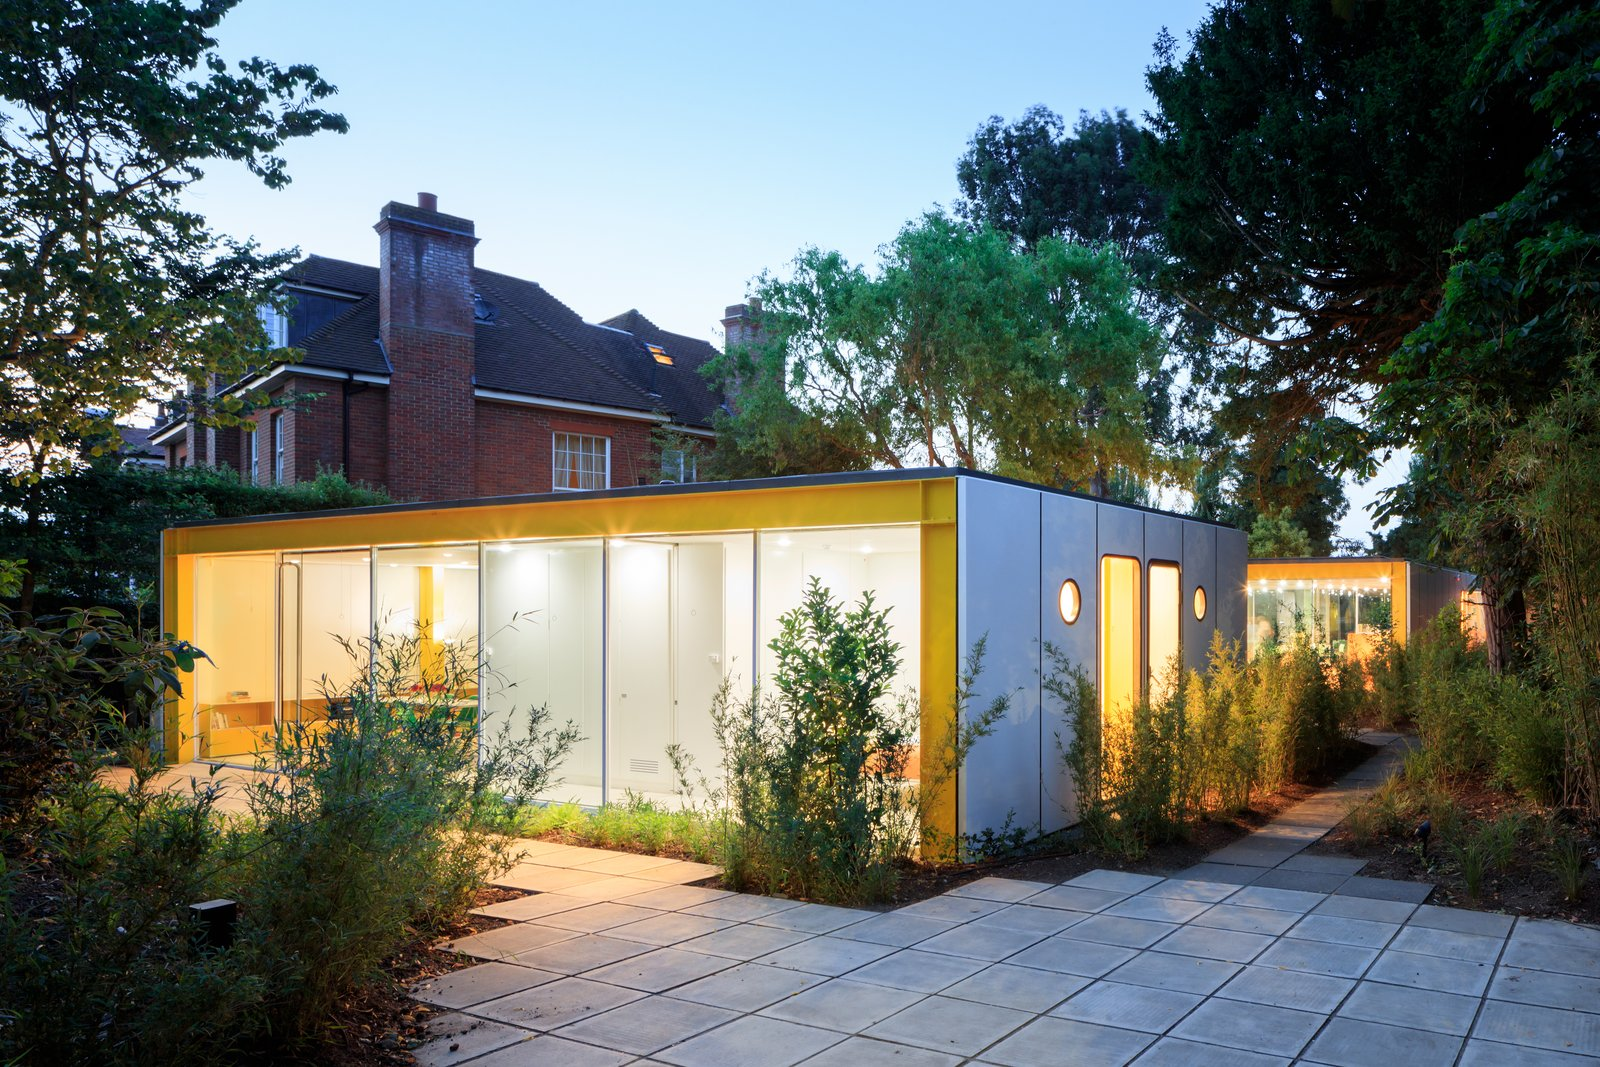 Tagged: Outdoor, Pavers Patio, Porch, Deck, Large Patio, Porch, Deck, and Back Yard. Fully Renovated, Wimbledon House by Richard Rogers Hosts New Architecture Fellows in London - Photo 6 of 14